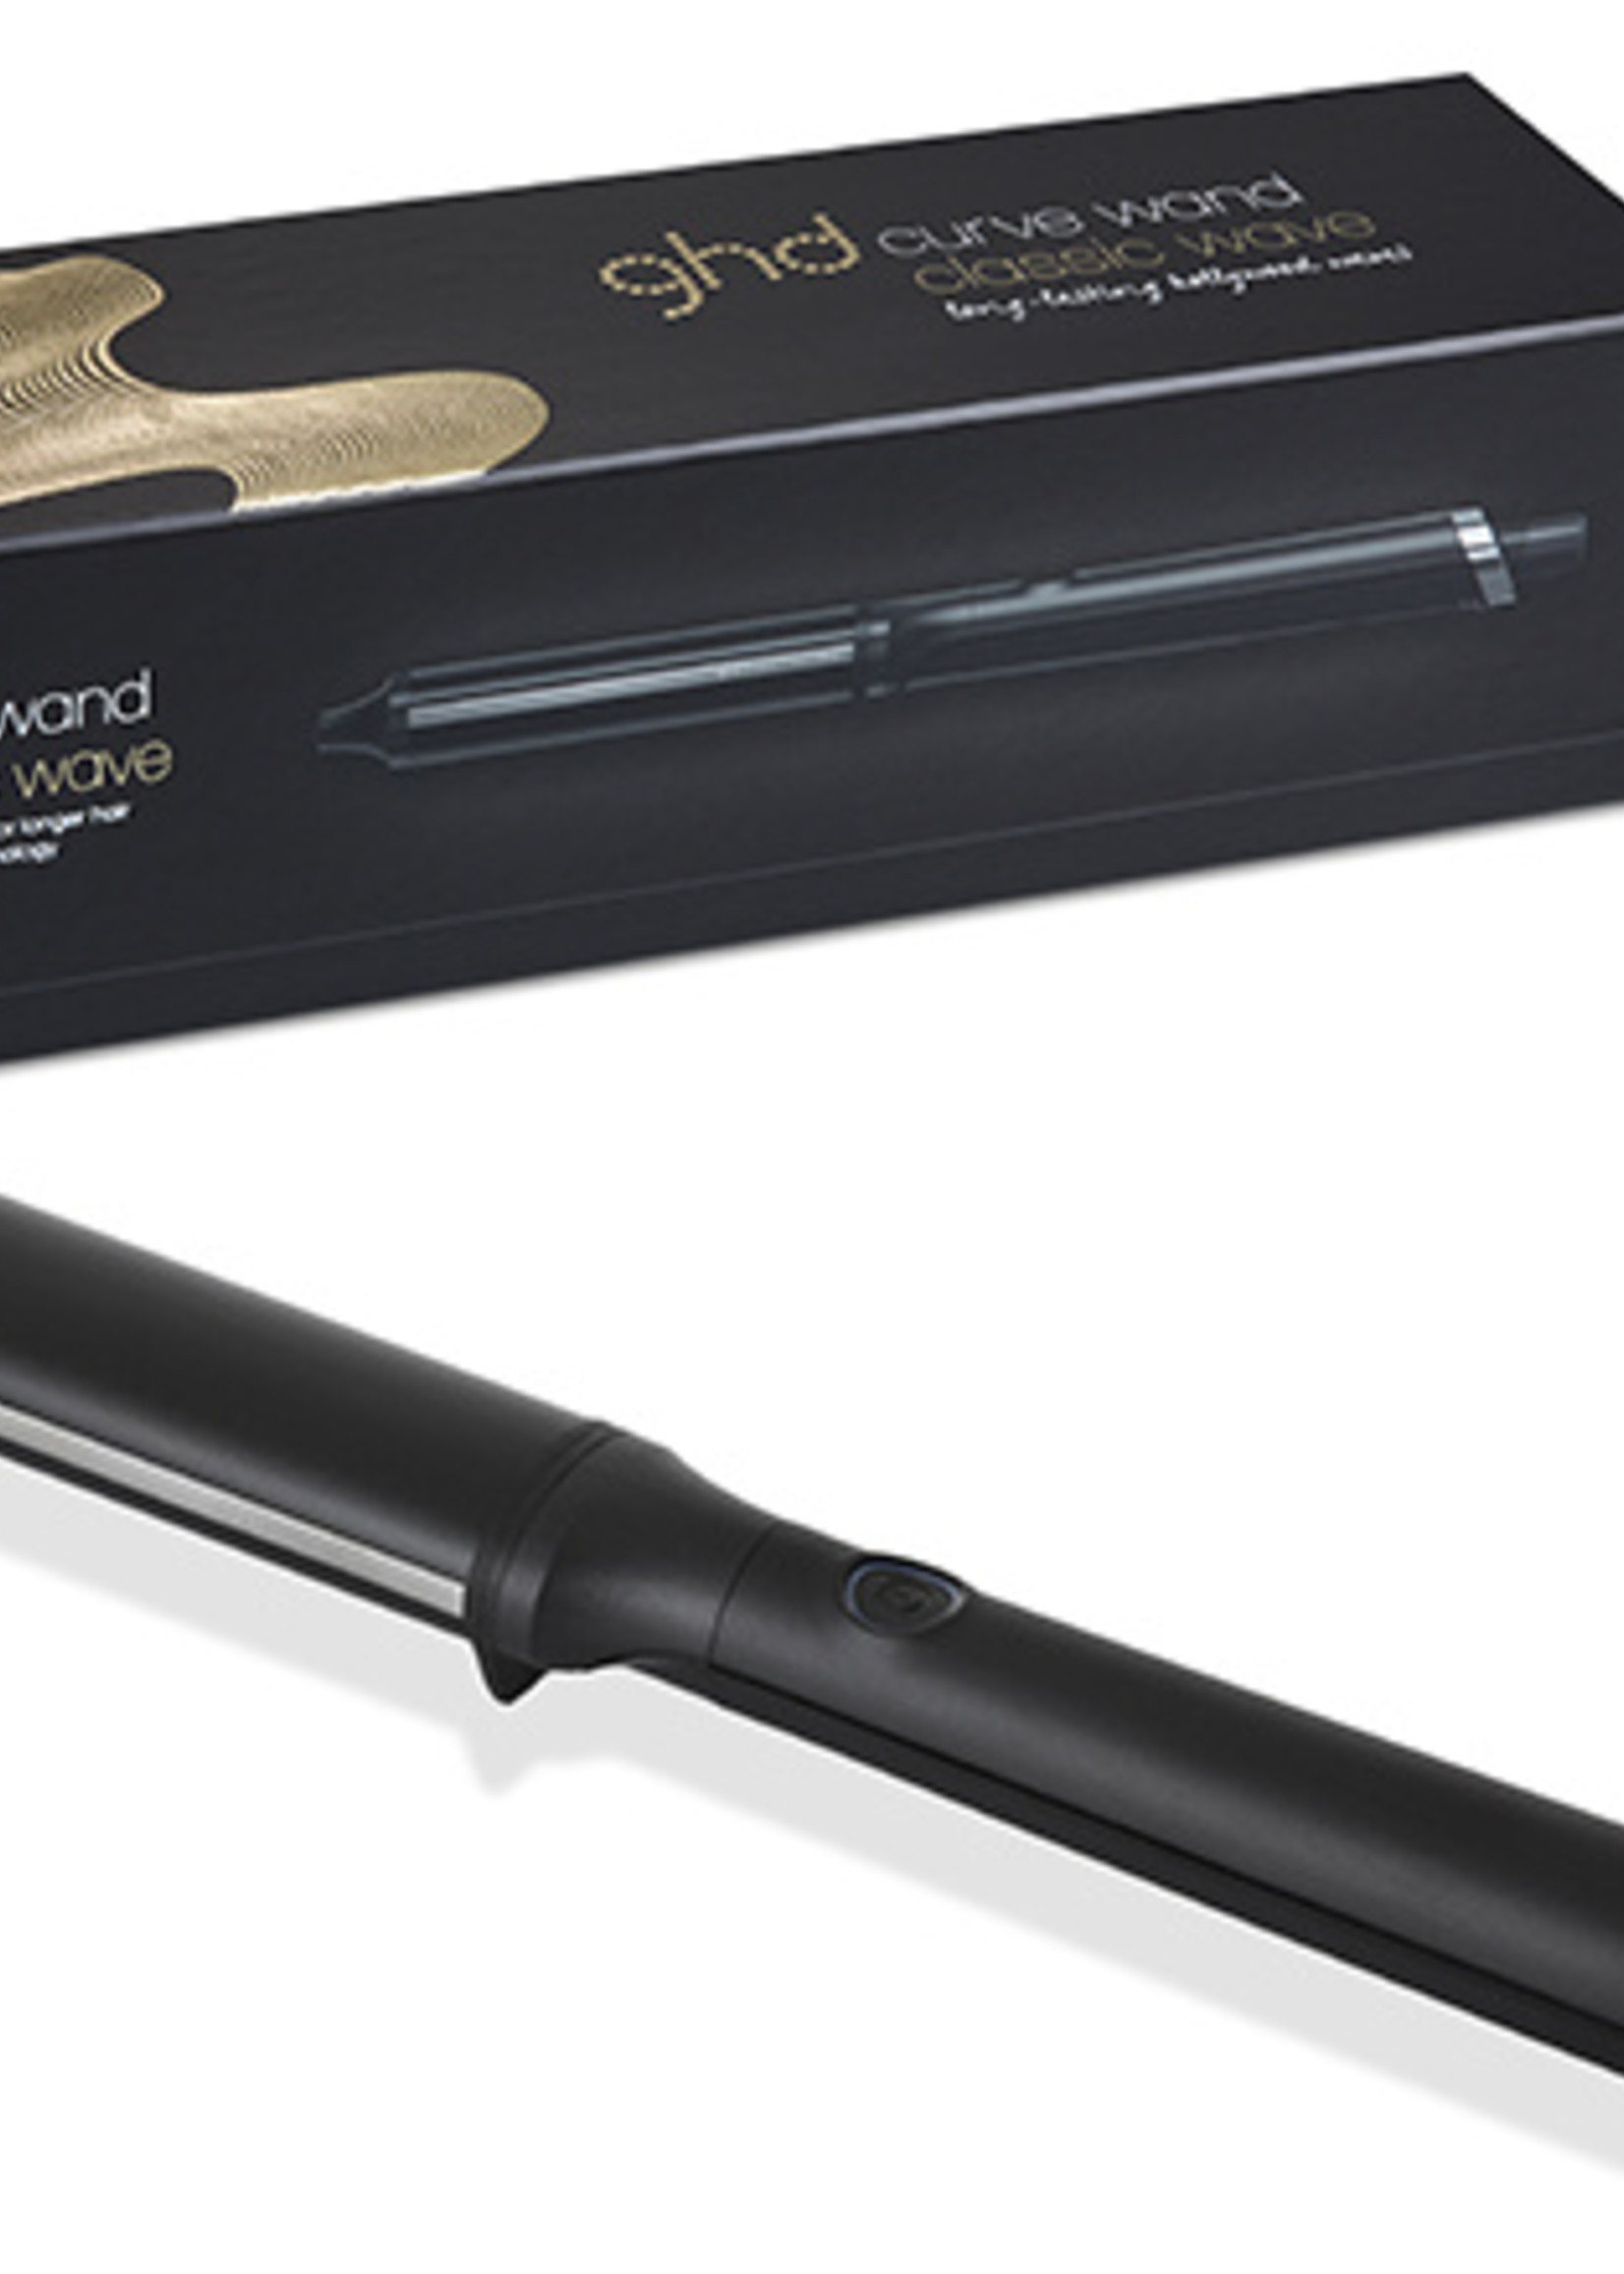 GHD professional GHD CURVE® CLASSIC WAVE WAND